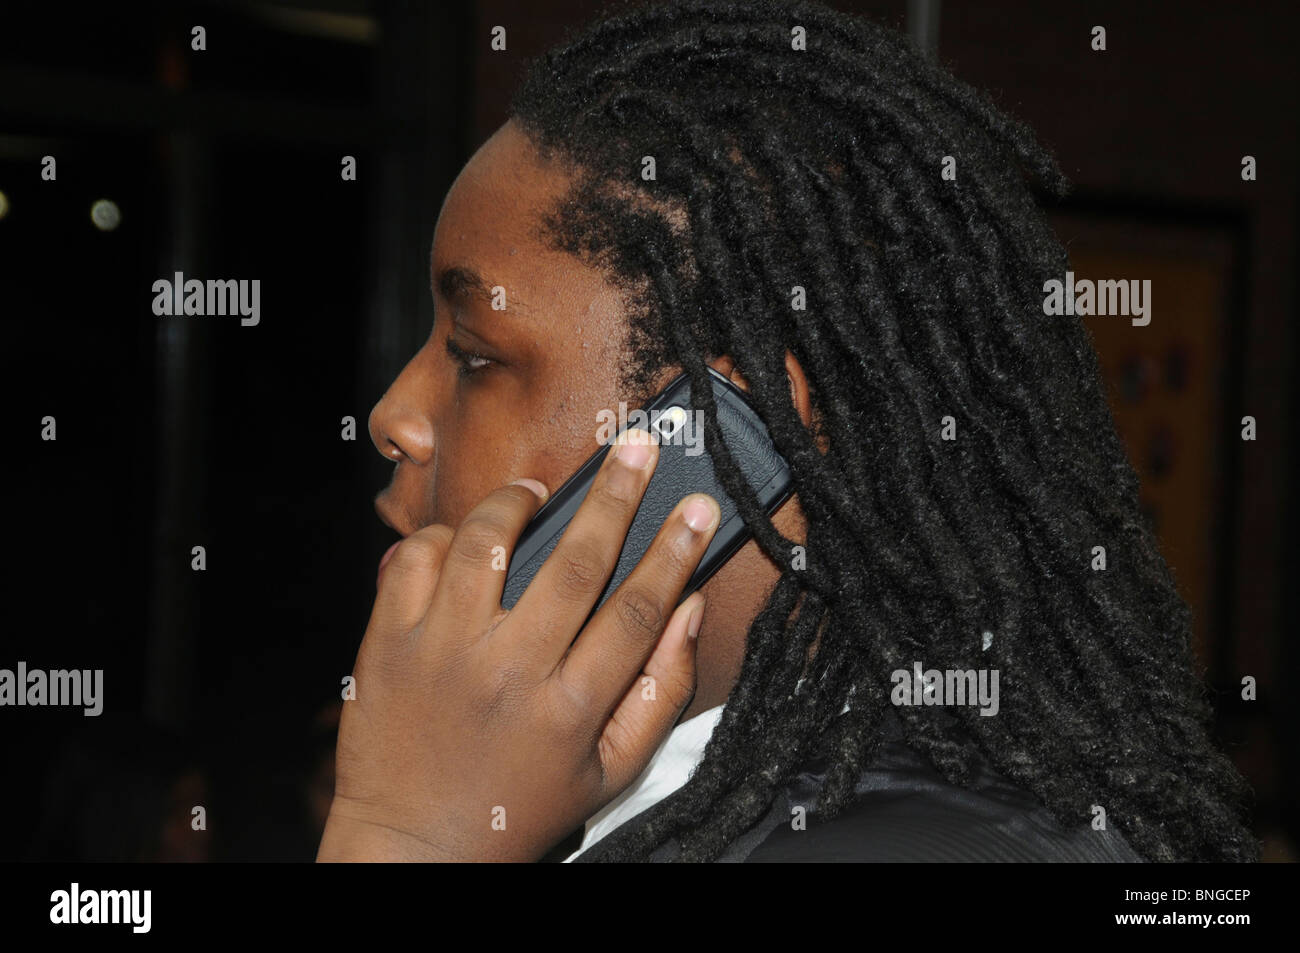 Teen talking on a cellphone, - Stock Image